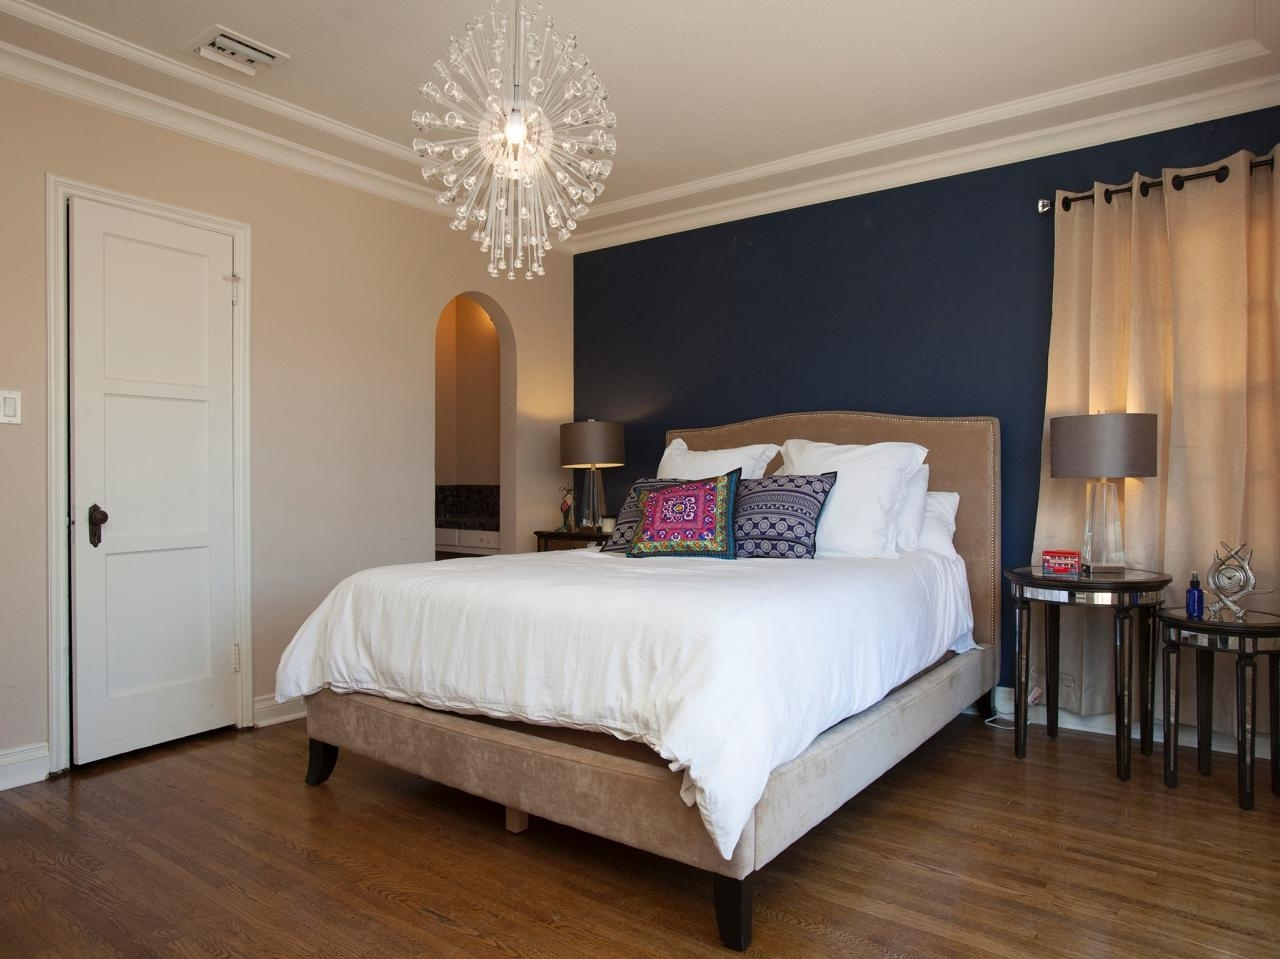 Dark Blue Wall Accent With Burlywood Color Base With Regard To Wall Accents Colors For Bedrooms (View 3 of 15)